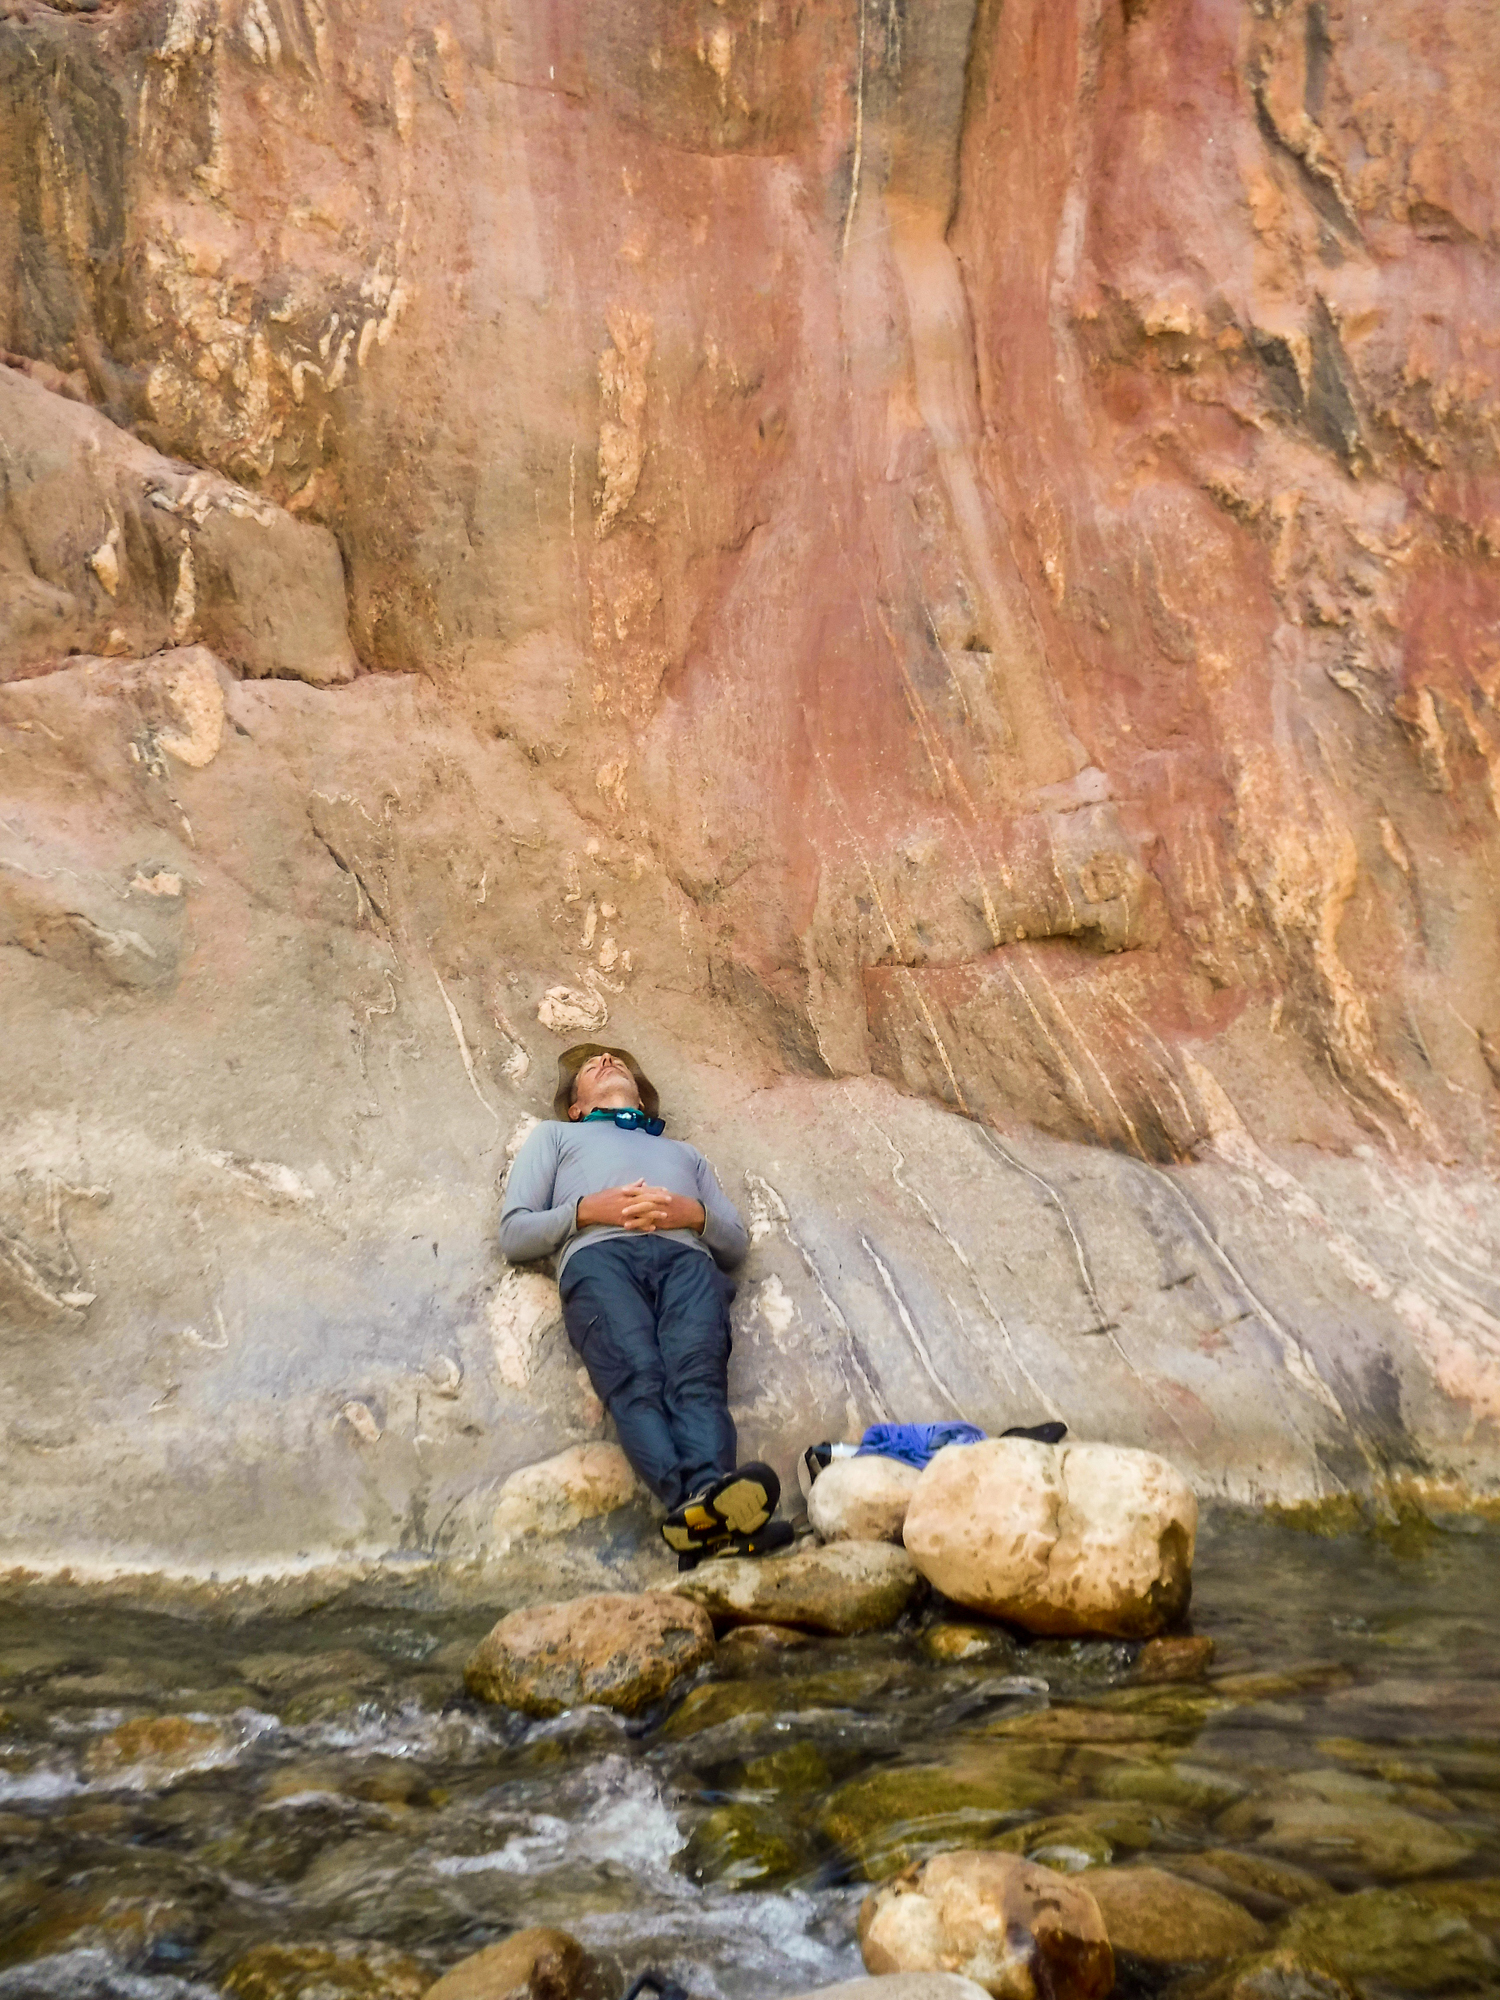 Me relaxing on the rocks worn smooth by eons of water flow.